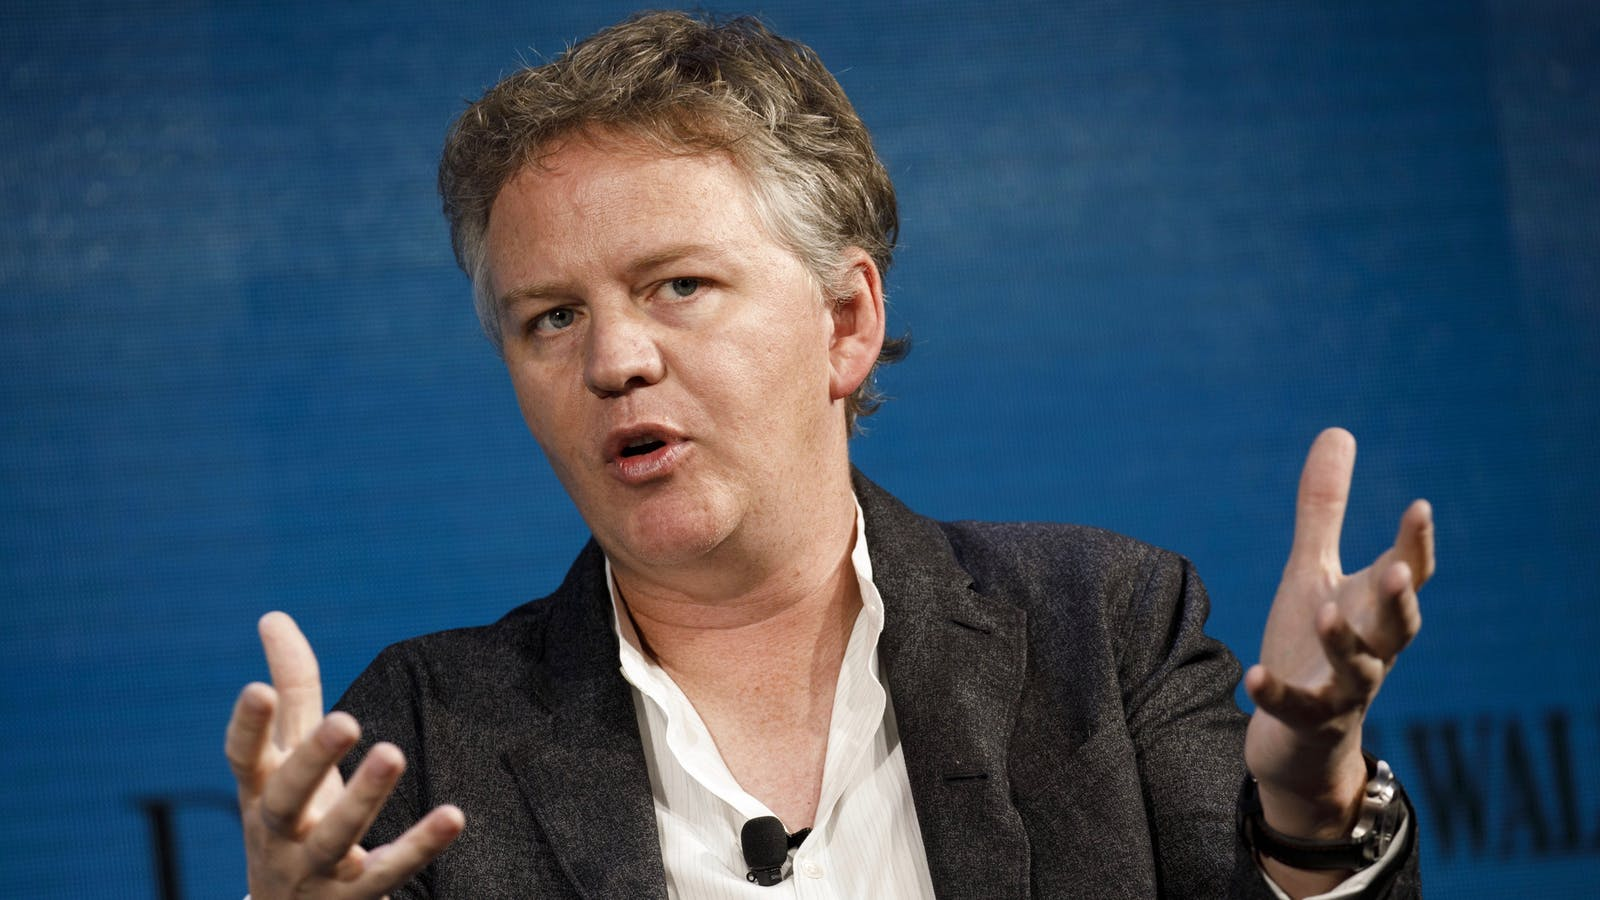 Cloudflare CEO Matthew Prince. Photo by Bloomberg.